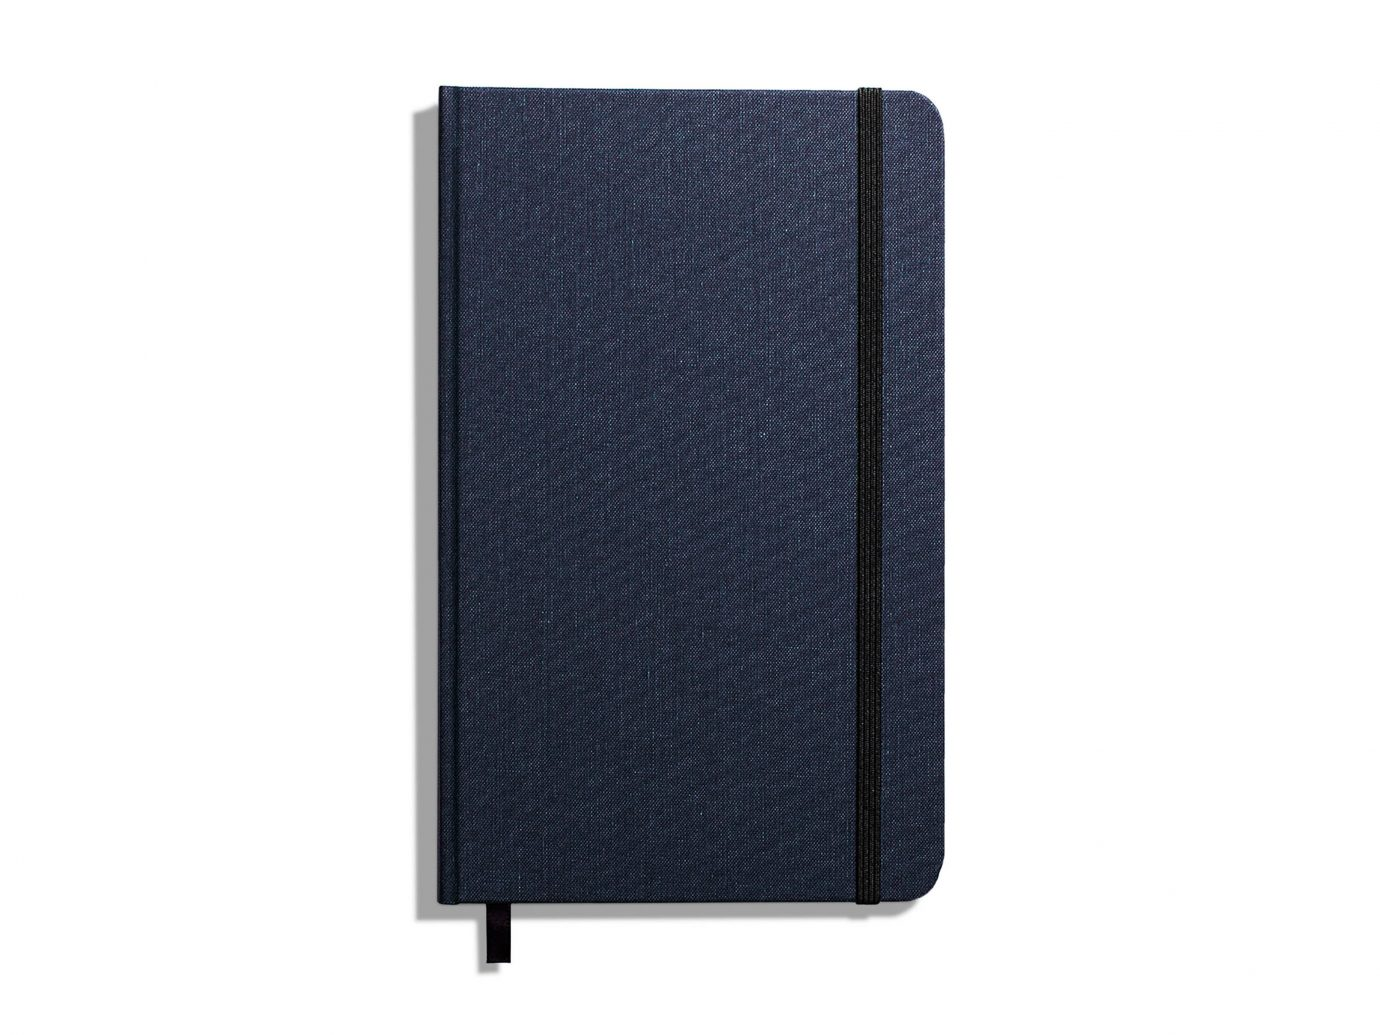 Shinola Hardcover Linen Journal